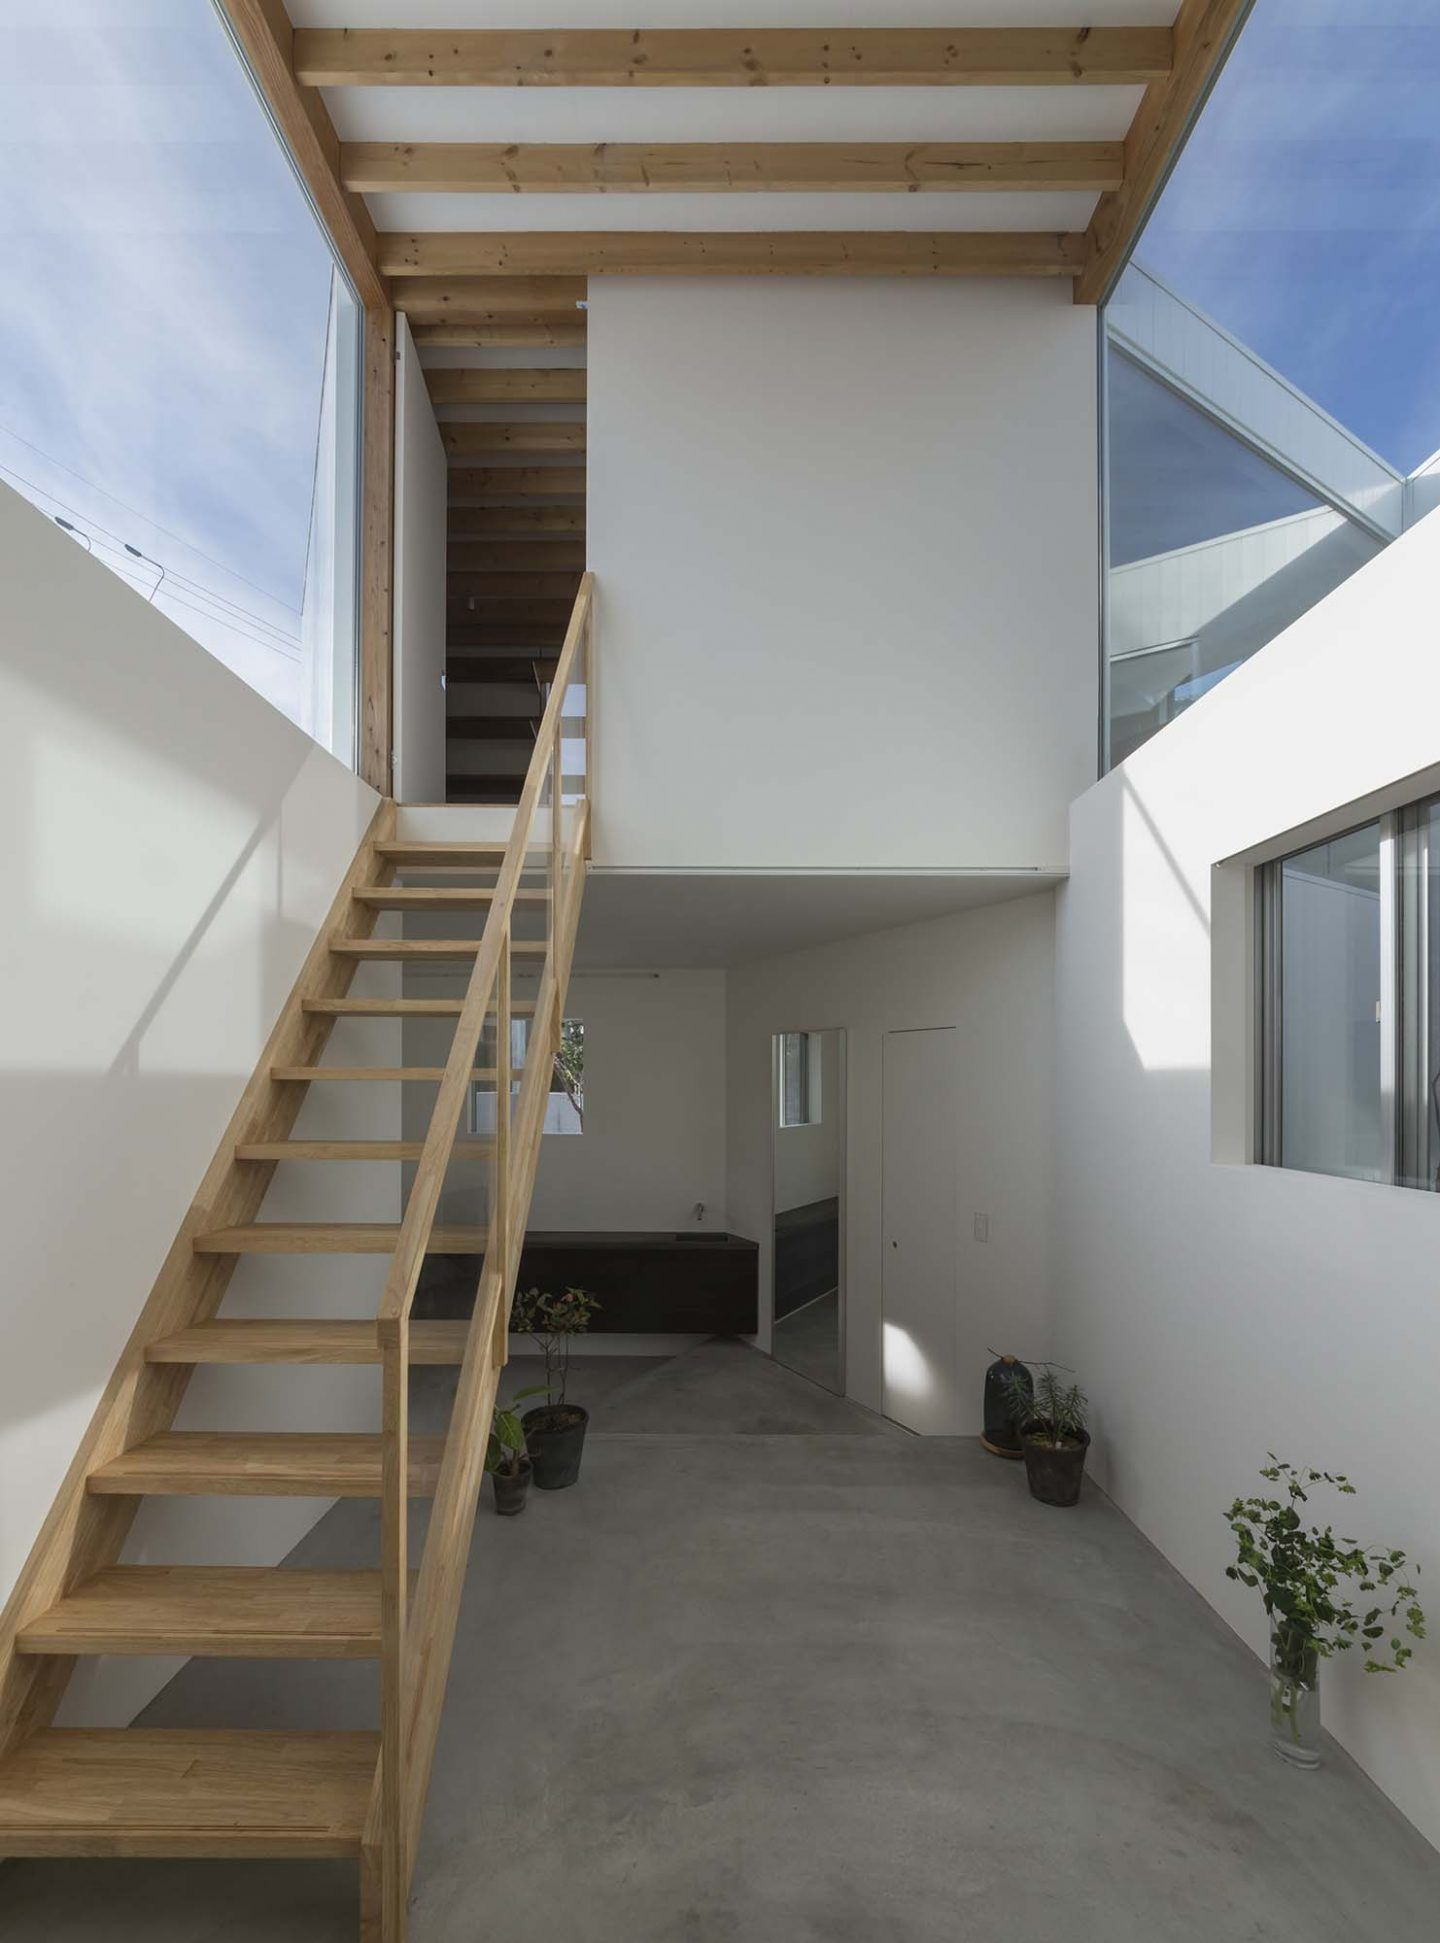 IGNANT-Architecture-Tato-Architects-House-In-Hokusetsu-16